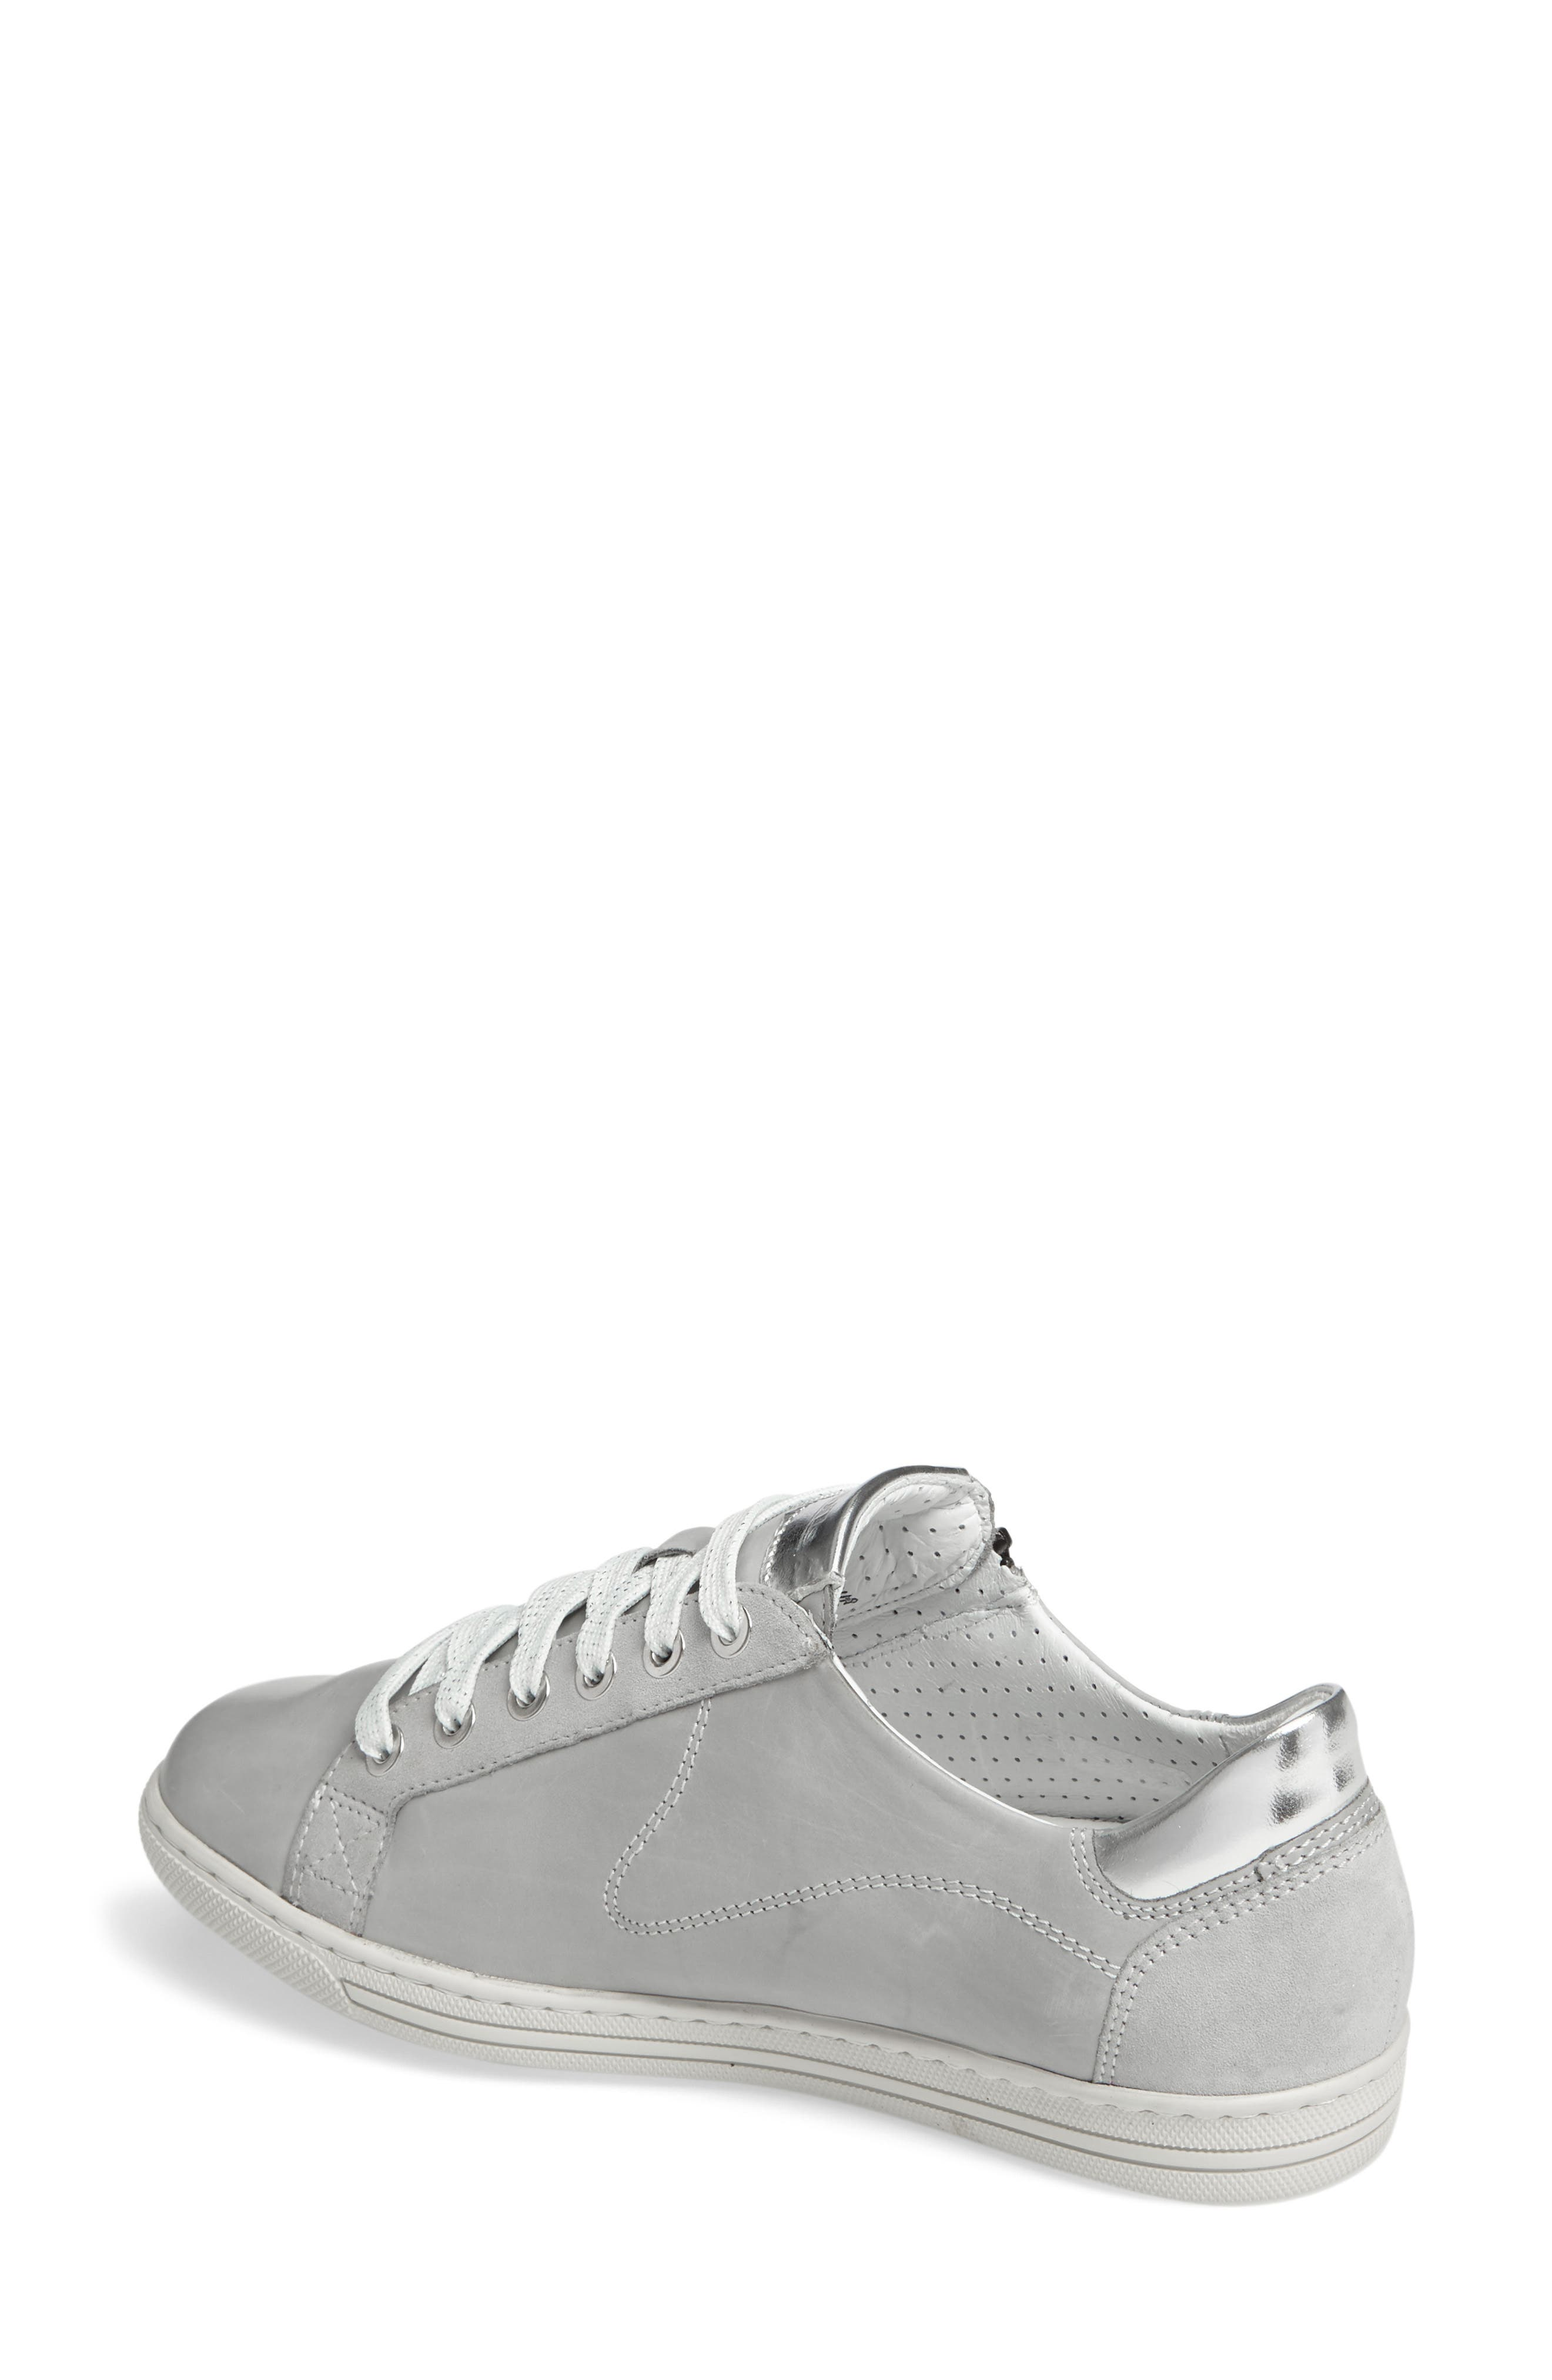 Hawai Sneaker,                             Alternate thumbnail 2, color,                             LIGHT GREY CALFSKIN LEATHER